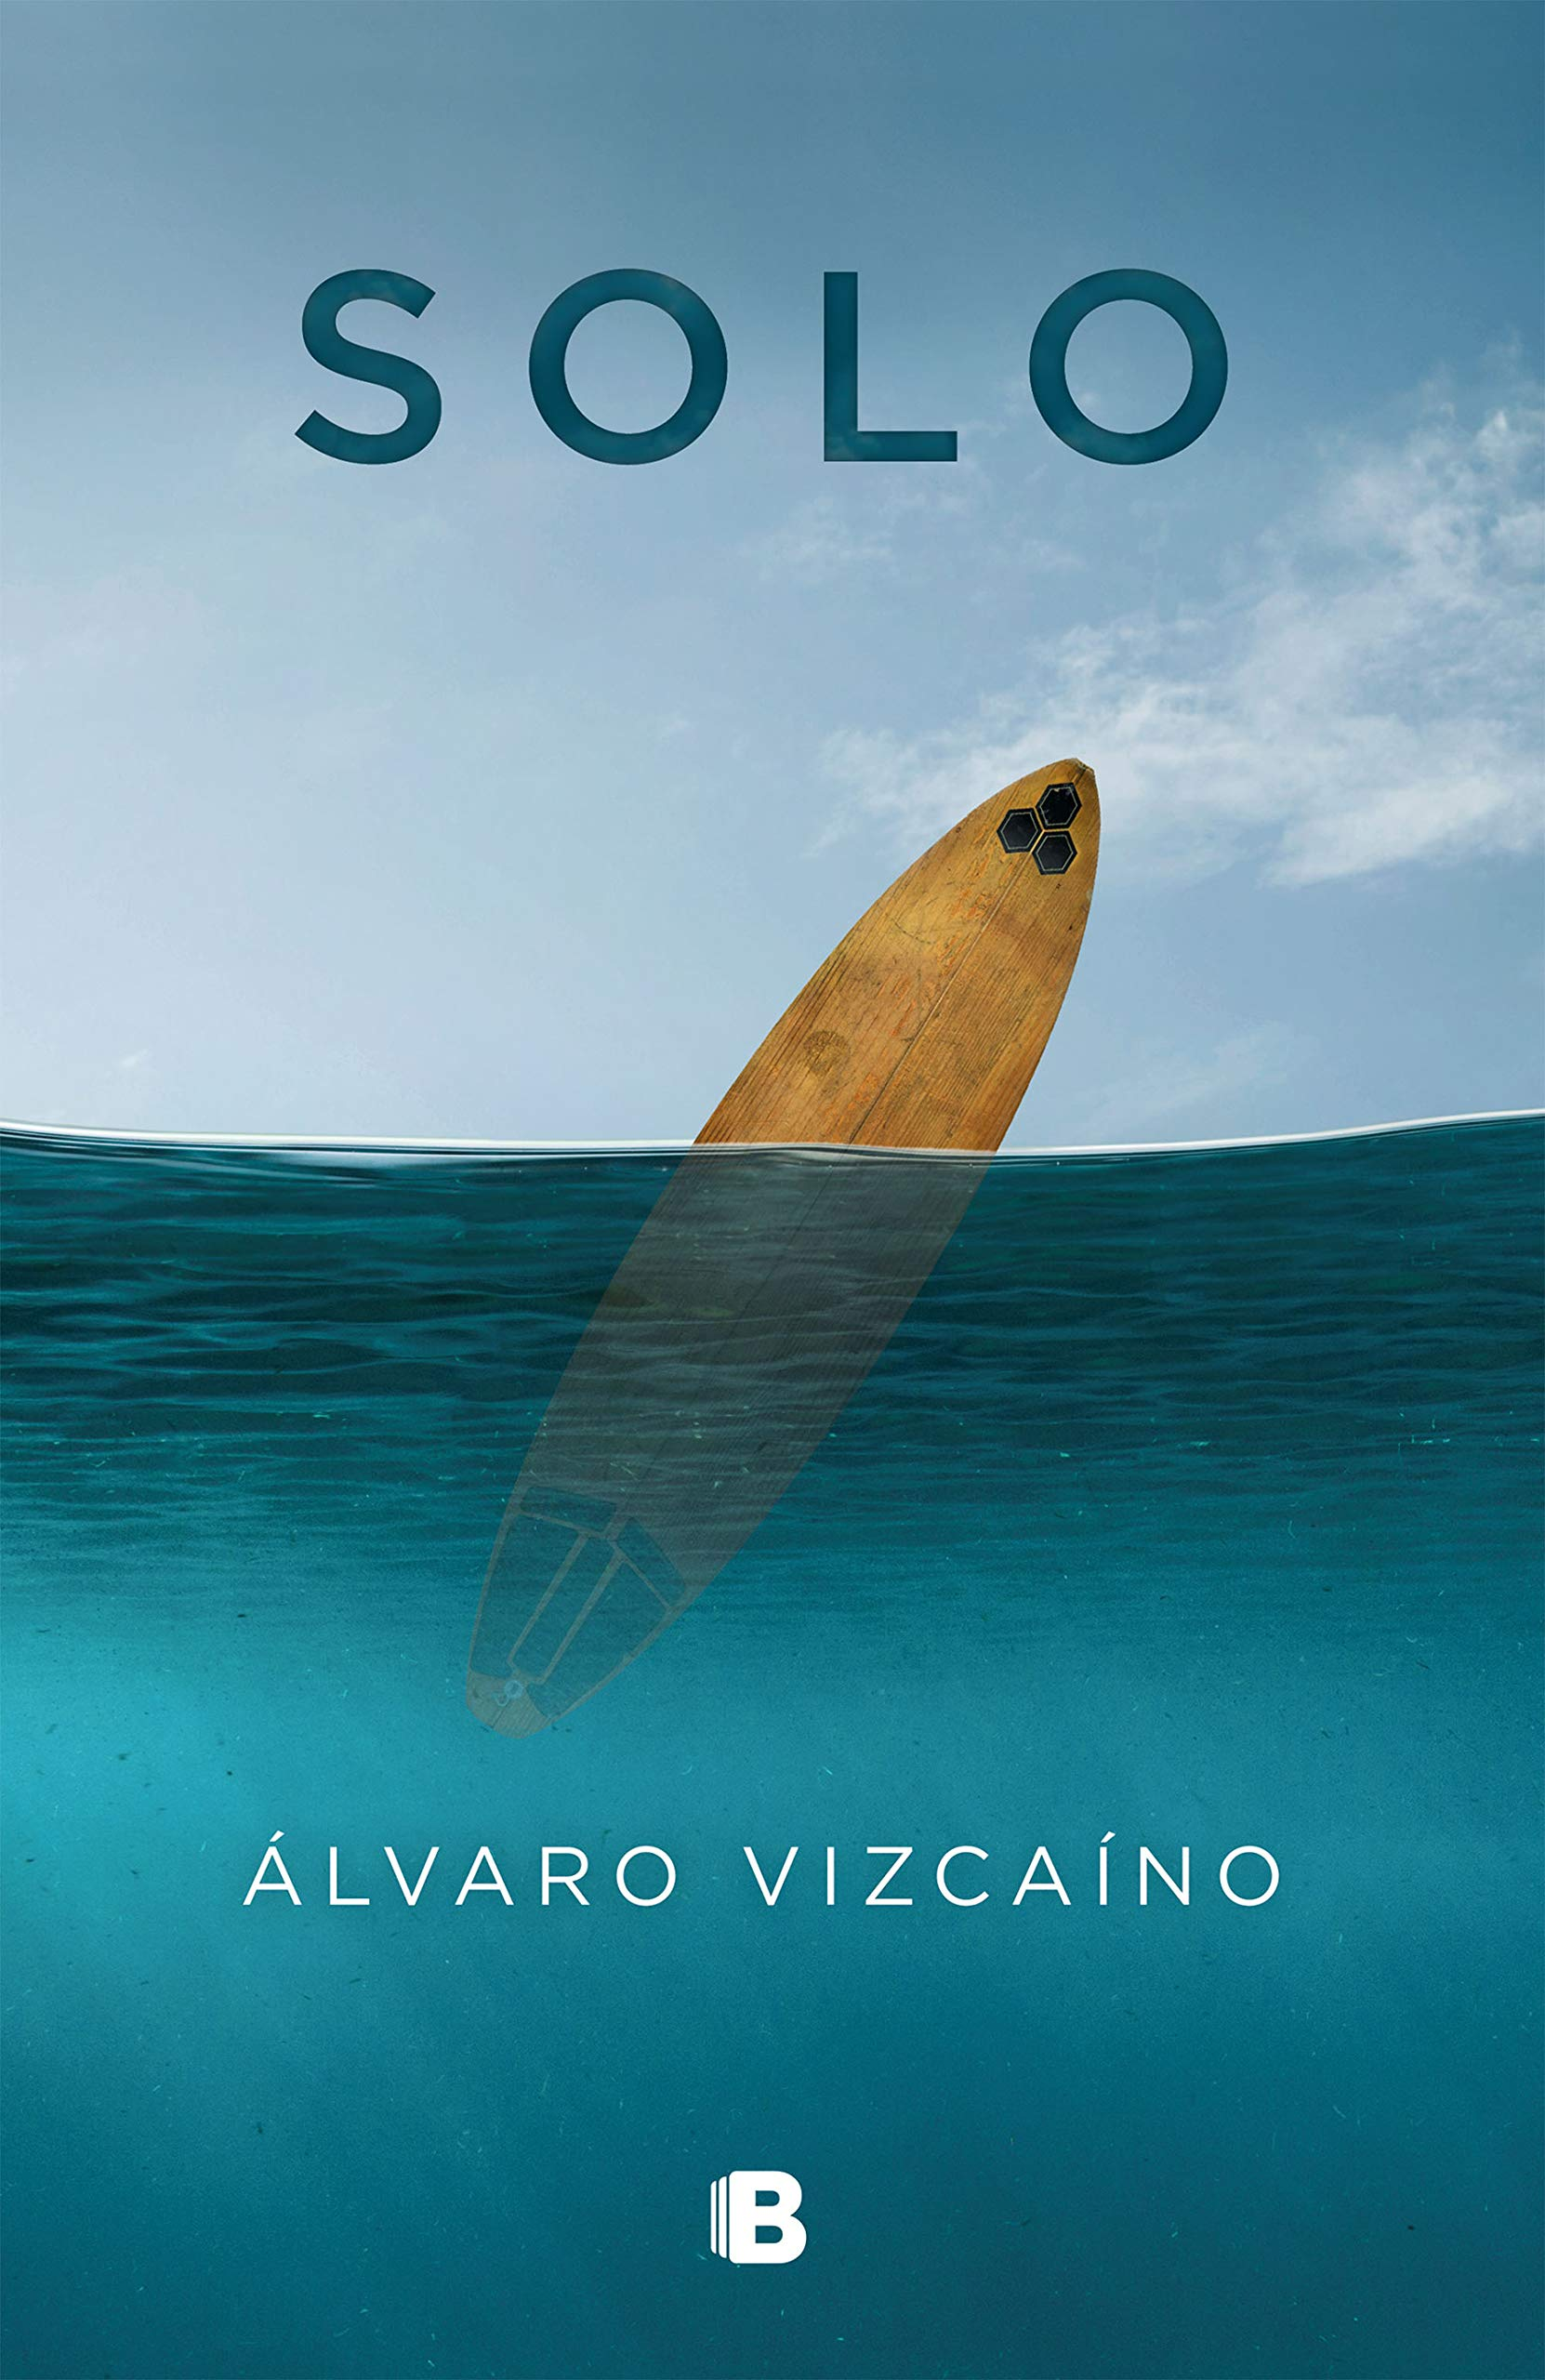 Solo (VARIOS) Tapa blanda – 18 oct 2018 Álvaro Vizcaíno B (Ediciones B) 8466664777 FICTION / Biographical